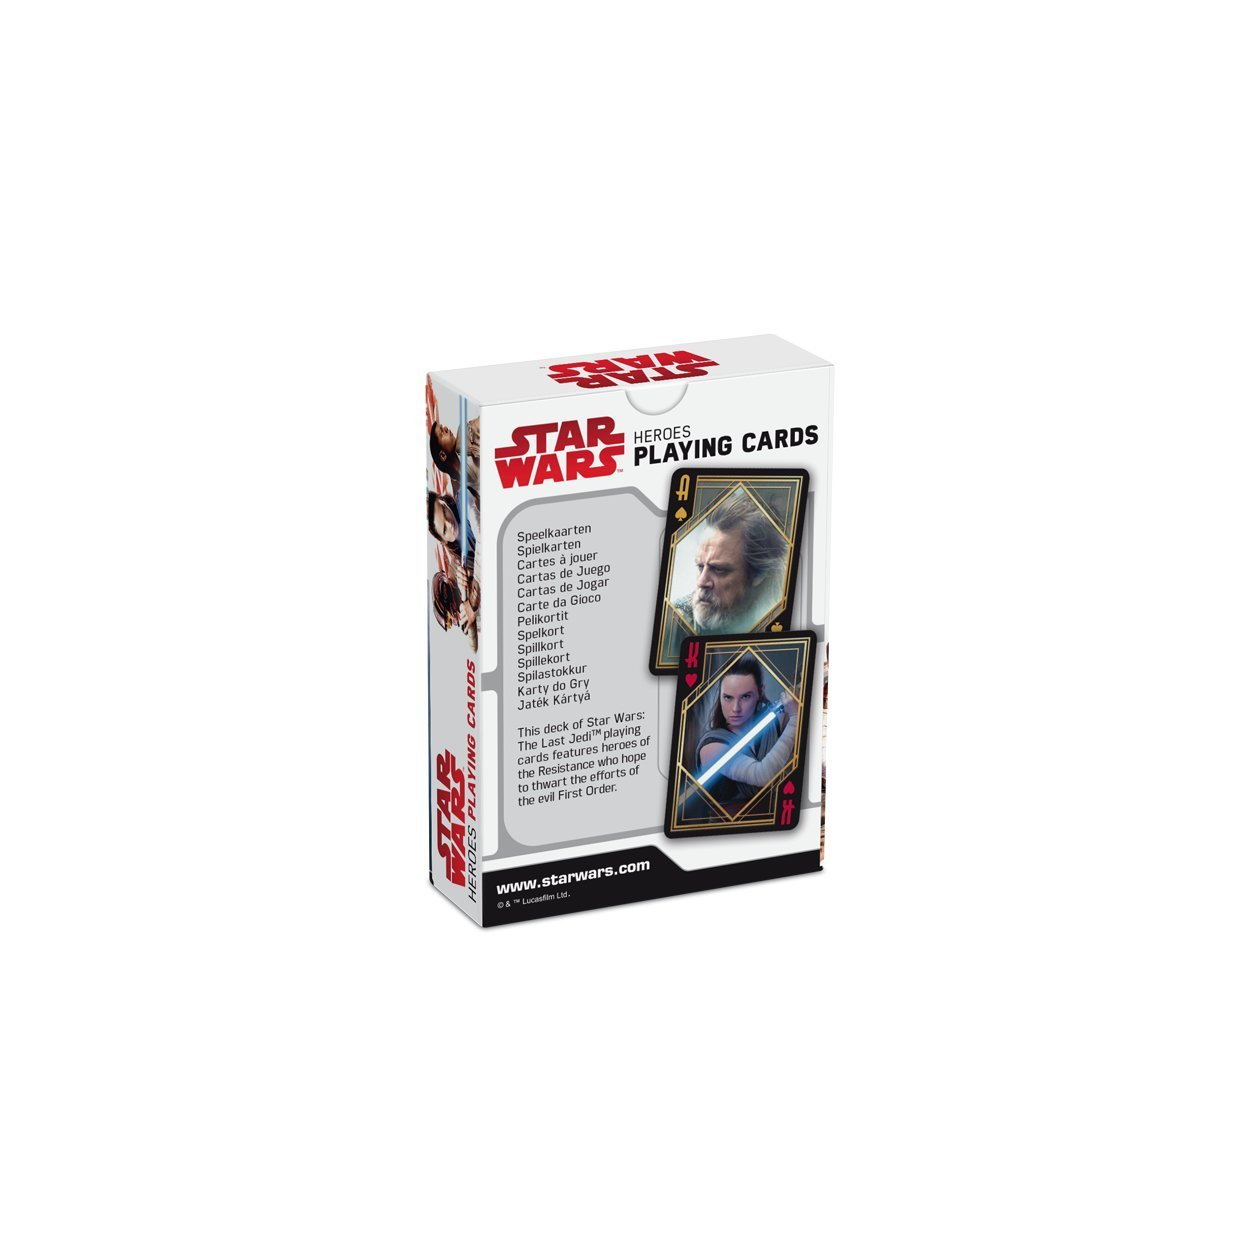 Amazon.com: Star Wars : The Last Jedi Heroes Playing Card ...